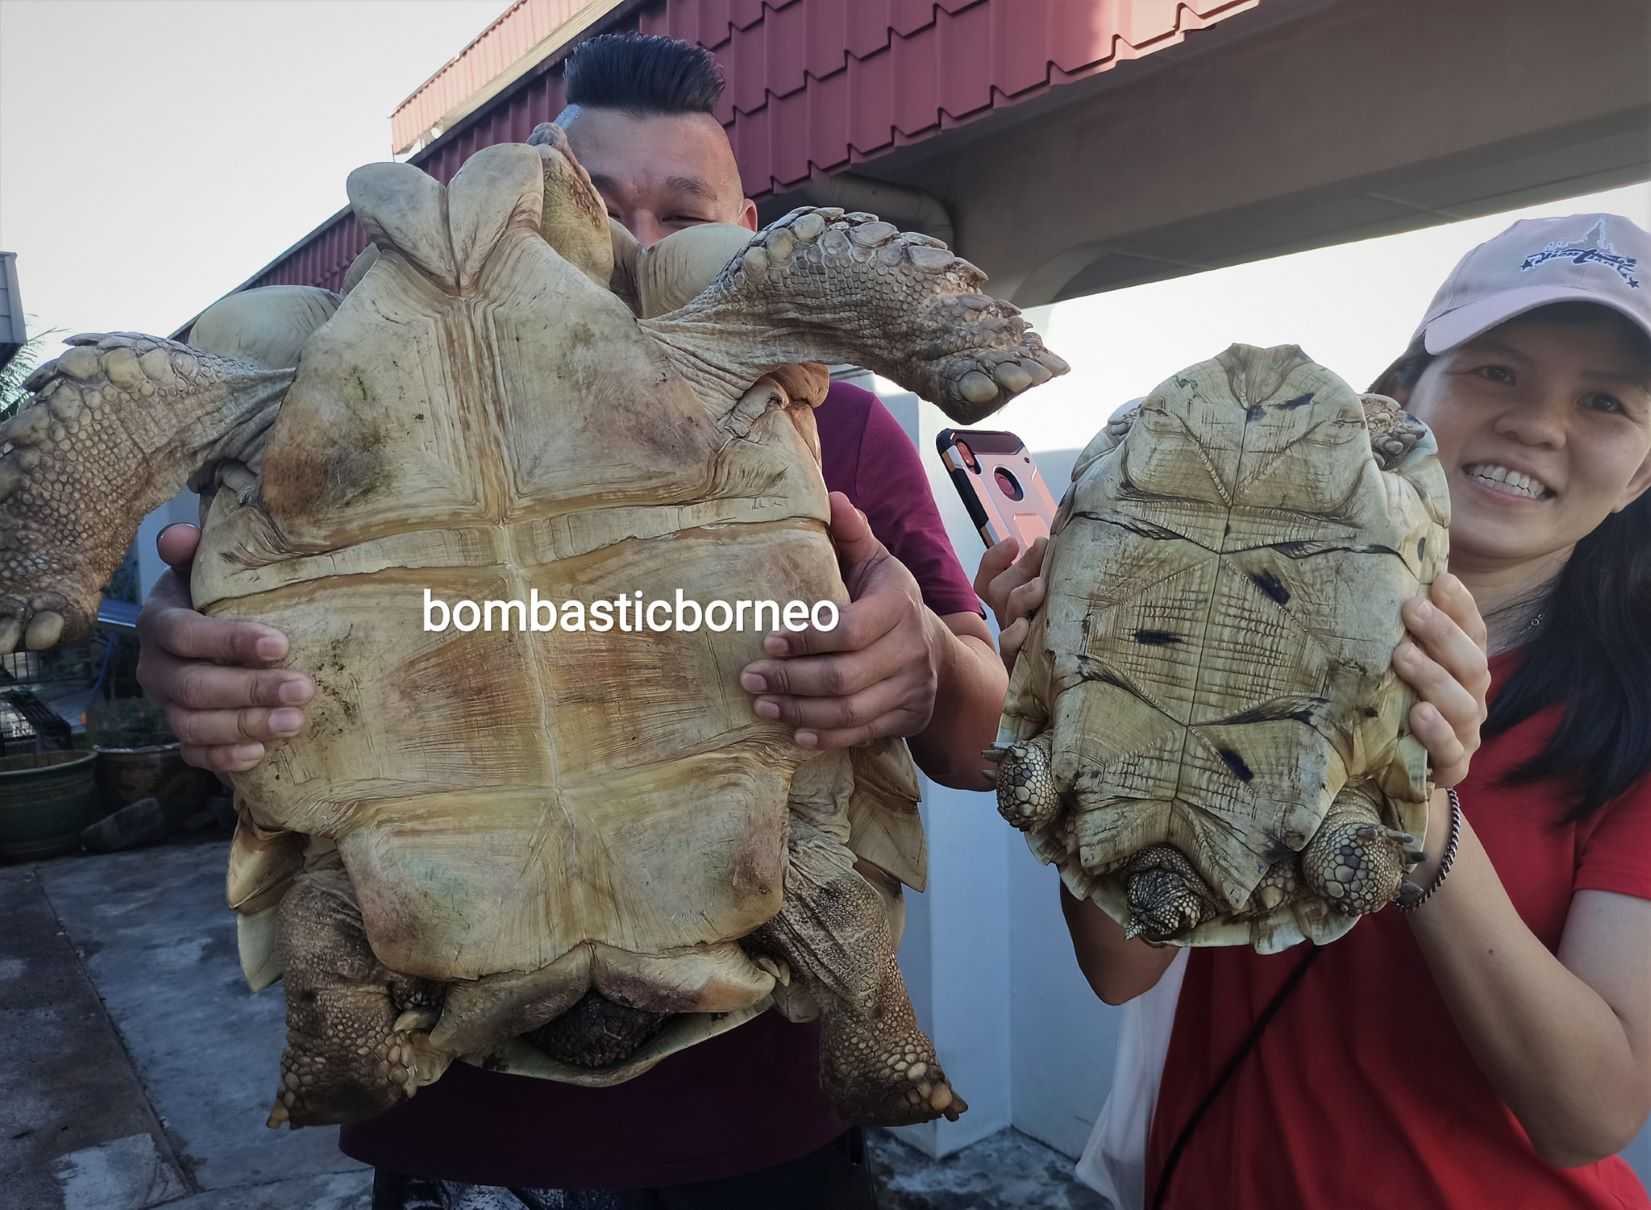 African spurred tortoise, Centrochelys sulcata, Sulcata Kura-kura, Haiwan Peliharaan Eksotik, pets shop, hobby, exploration, Kho Animal Enterprise, Malaysia, tourist attraction, travel guide, 婆罗洲砂拉越游踪, 马来西亚古晋嗜好, 非洲盾臂龟宠物